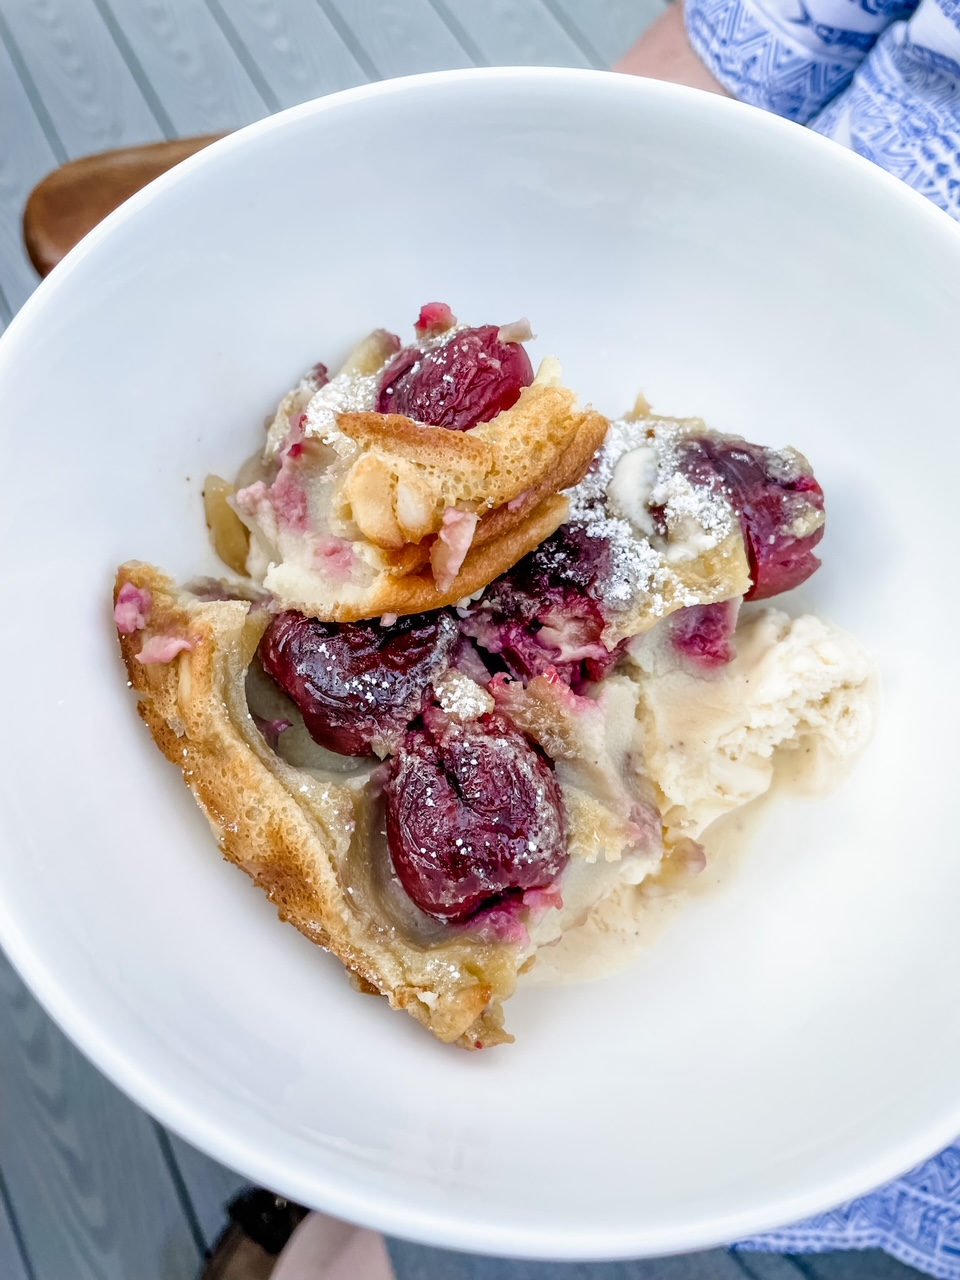 A slice of the Fresh Cherry Clafoutis in a white bowl